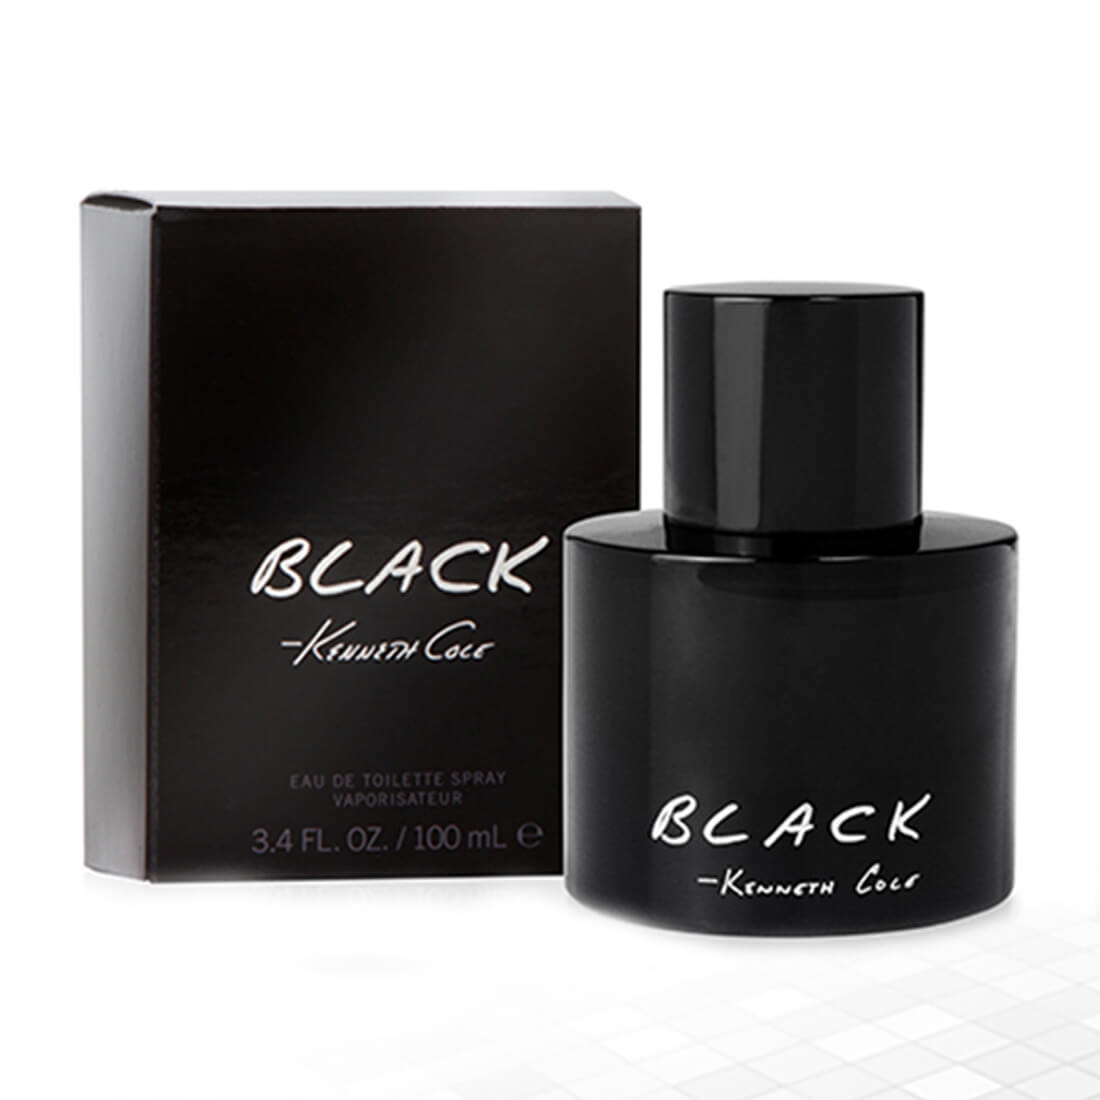 Kenneth Cole Black Eau De Toilette For Men - 100ml